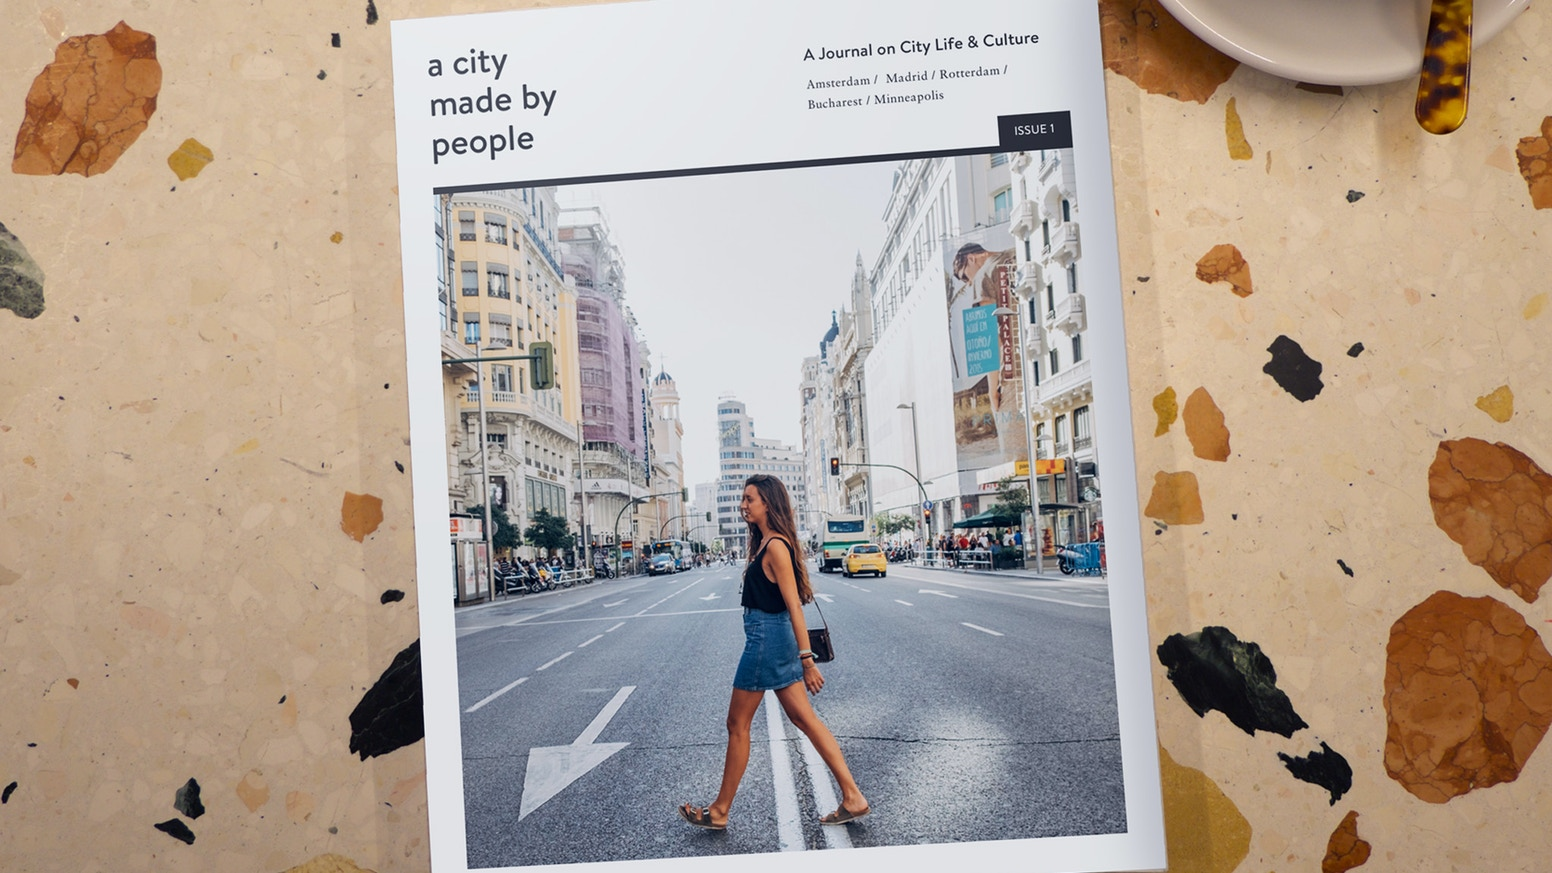 A Journal on City Life & Culture, created through an international network of city correspondents.